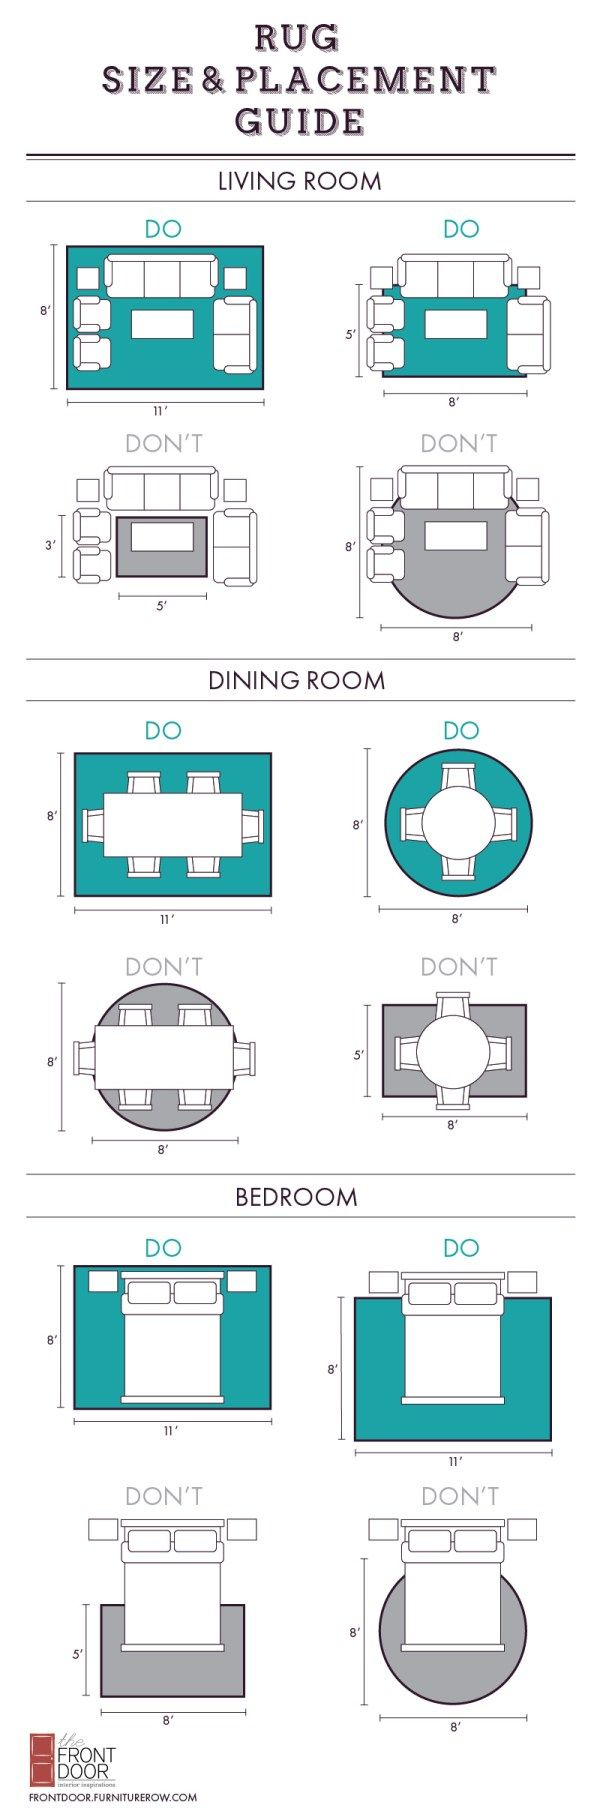 rug placement bathroom rugs placement couch placement ideas area rug